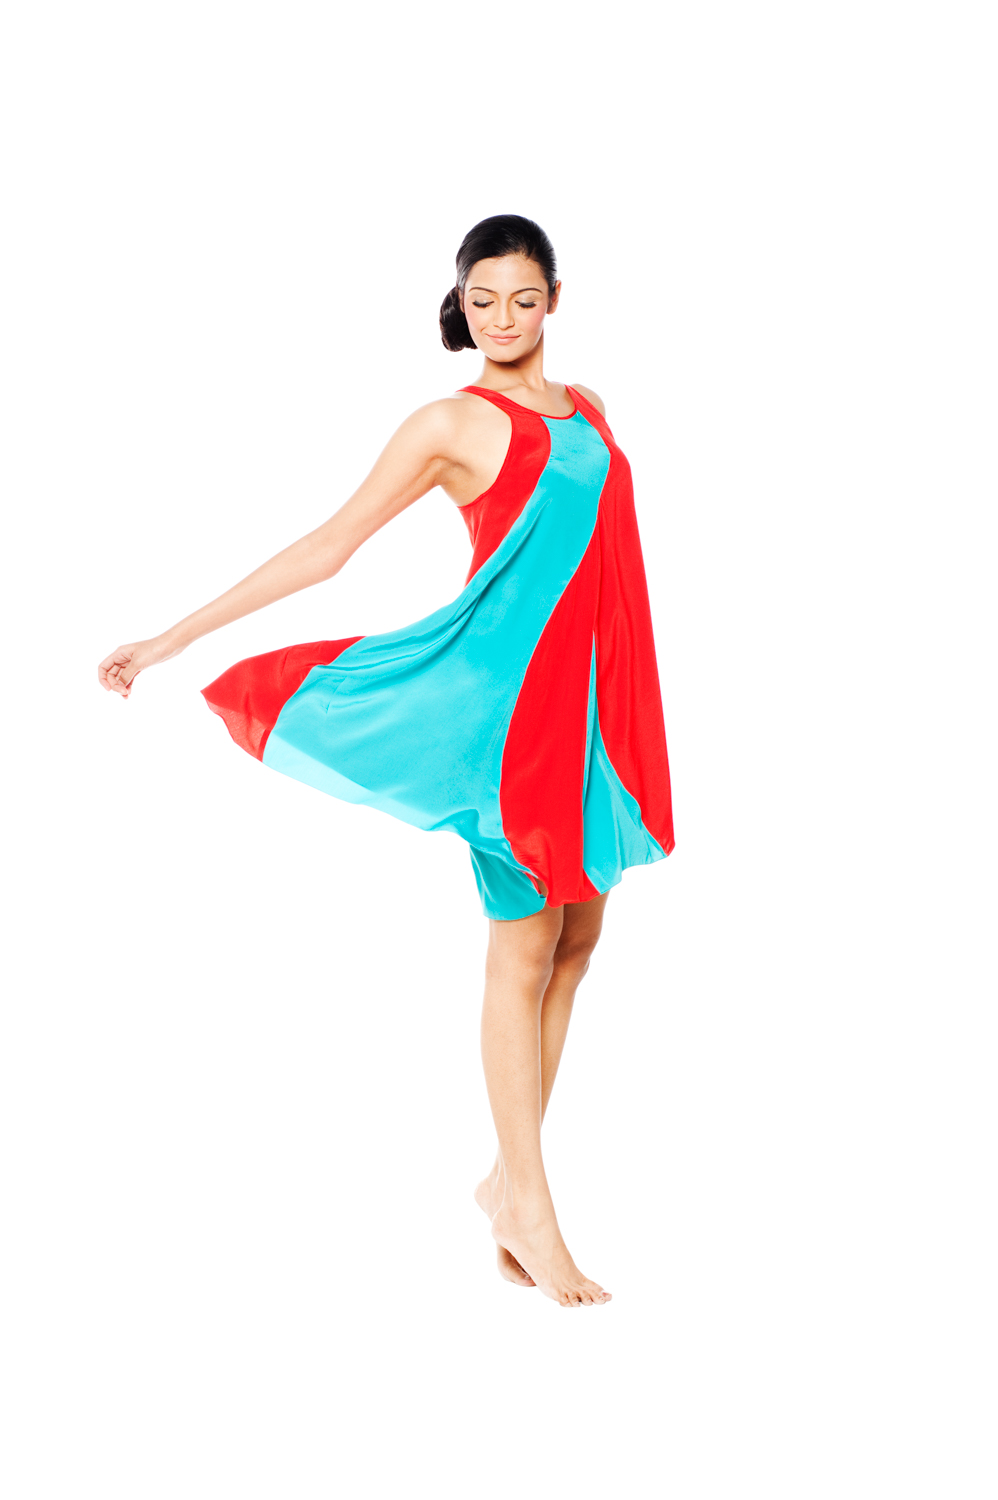 model_india_red_blue_swirl-3188.JPG